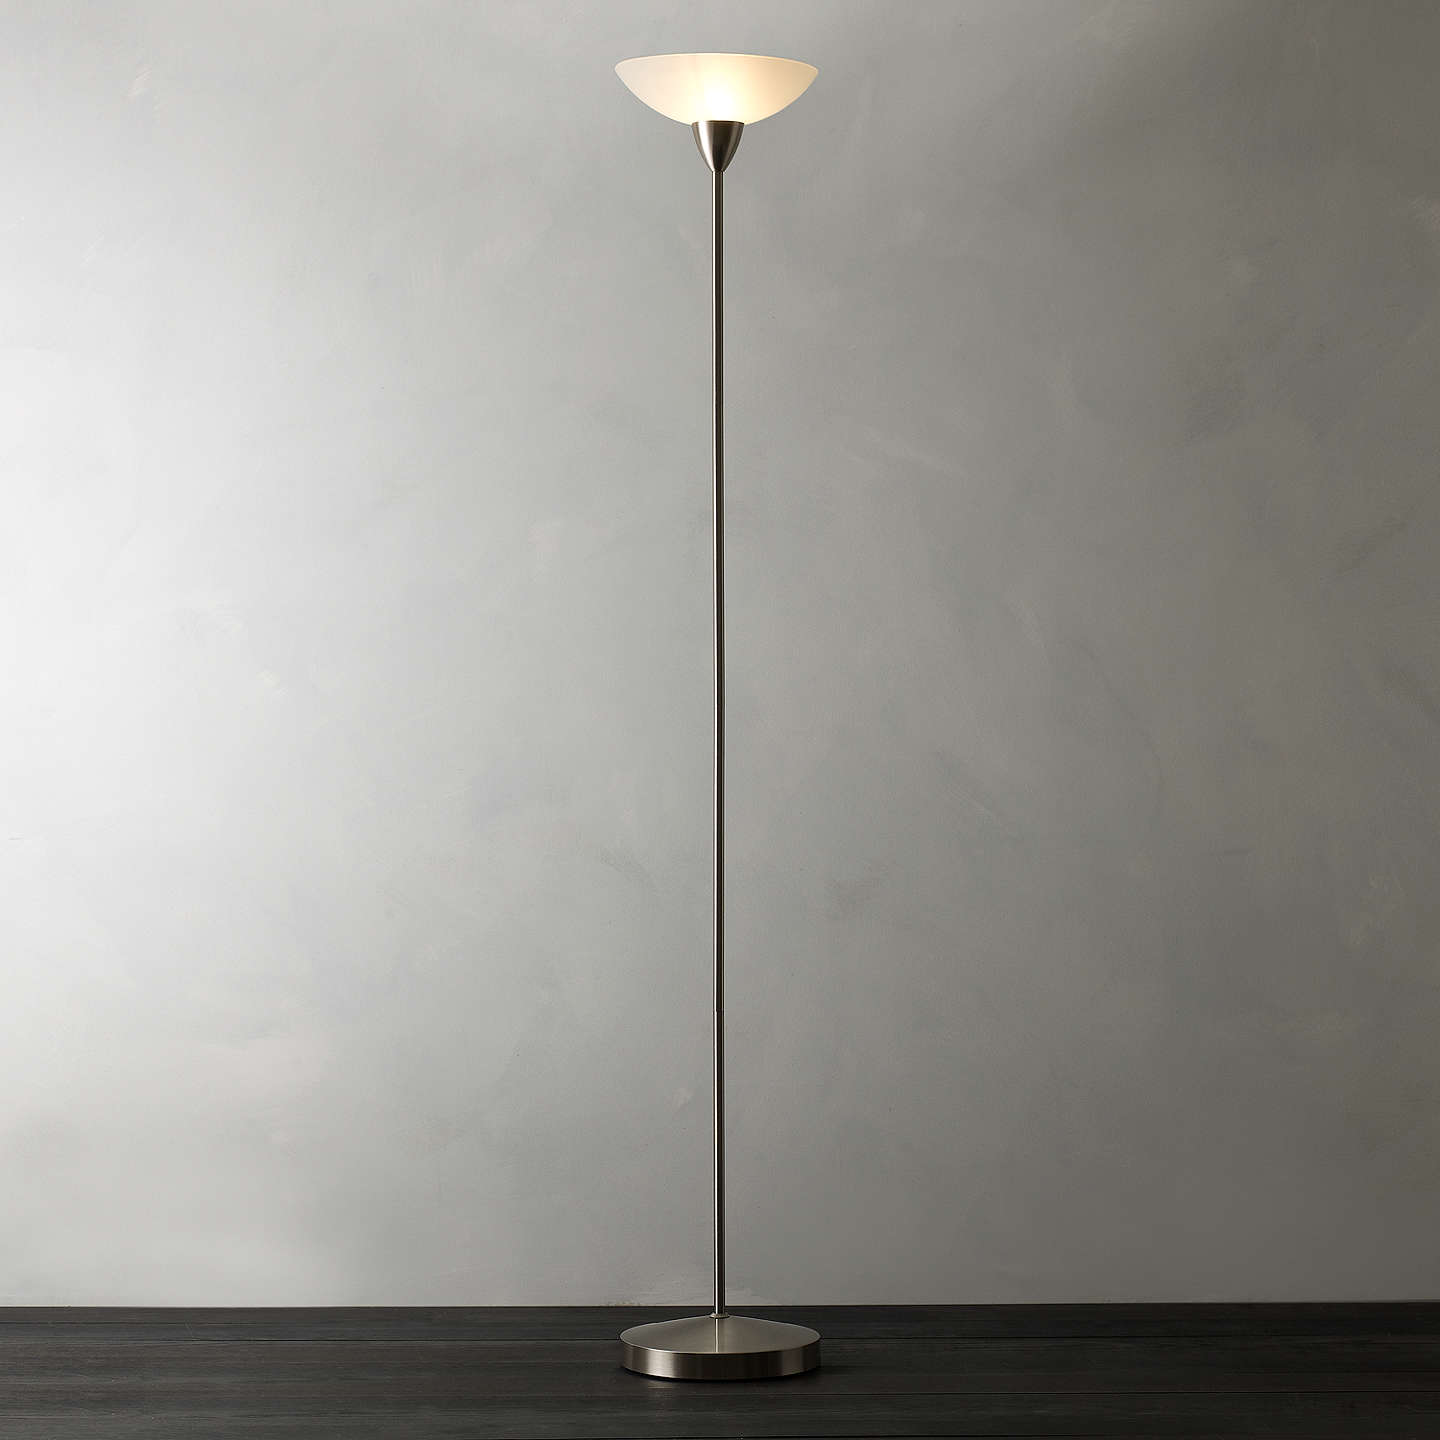 House by john lewis darlington uplighter floor lamp at john lewis buyhouse by john lewis darlington uplighter floor lamp brushed chrome online at johnlewis mozeypictures